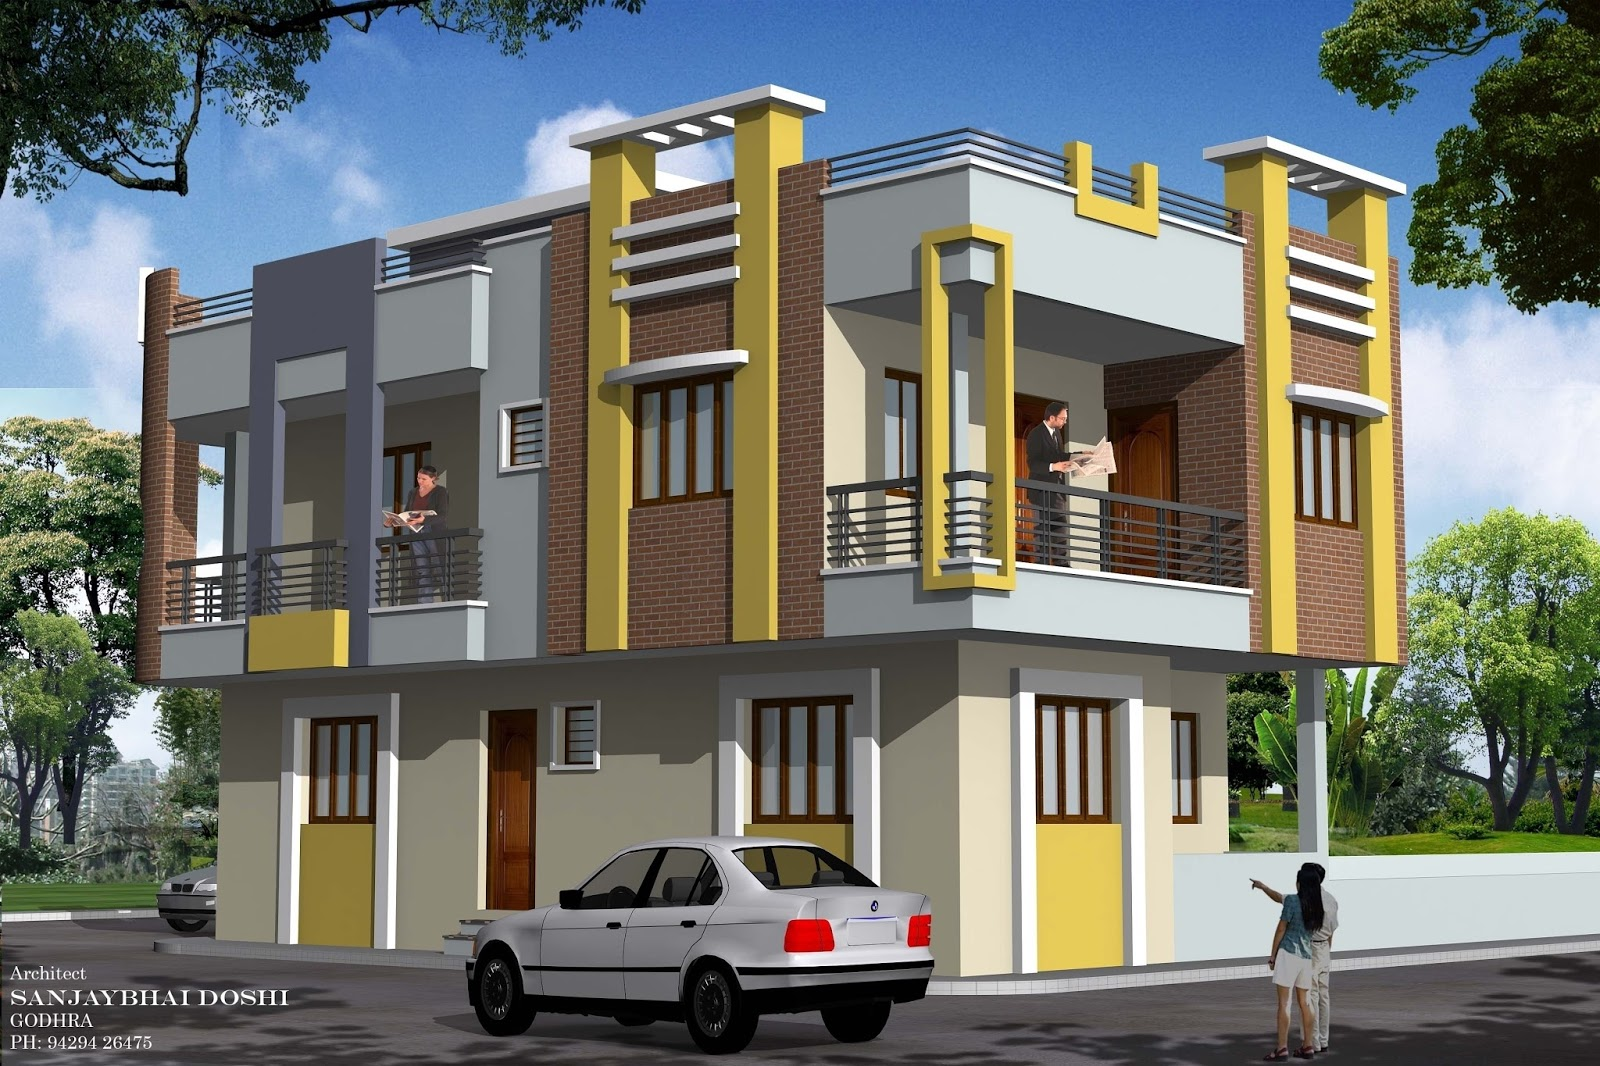 Sweet home design and cute house design rachana architect for Bangladeshi home design picture